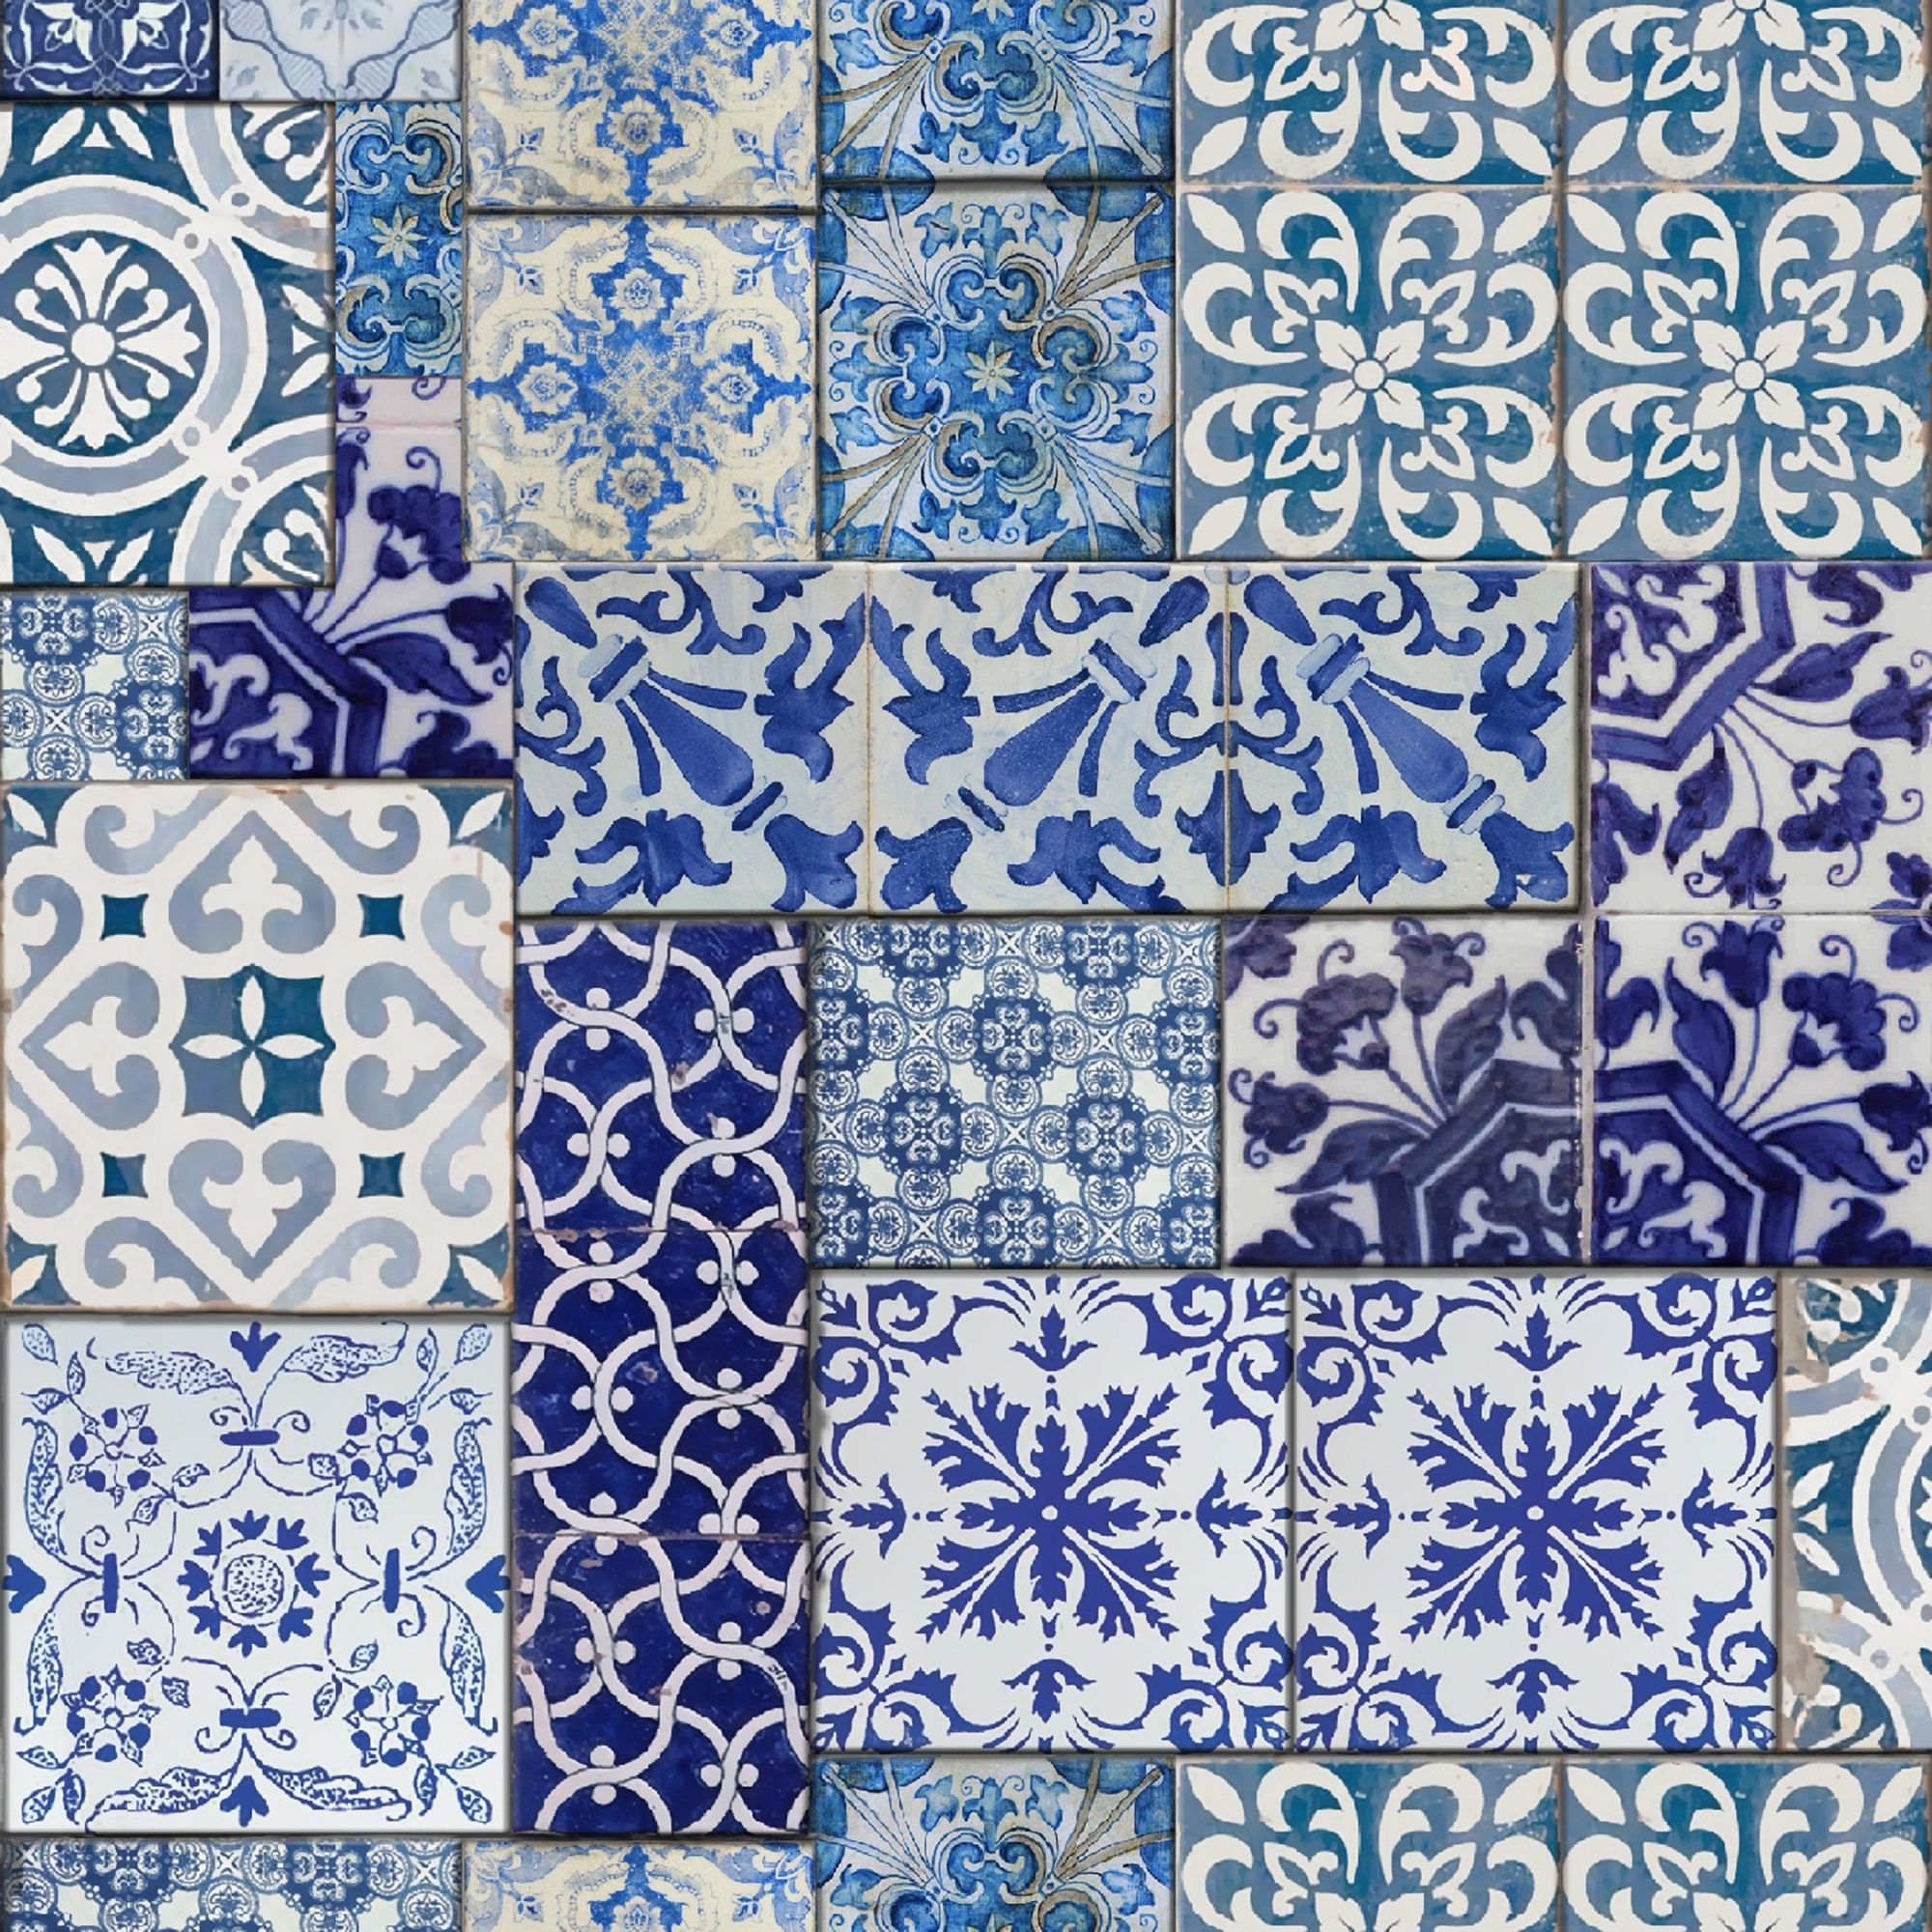 Muriva Moroccan Tiles Wallpaper Blue / White (601547) - Sample ...